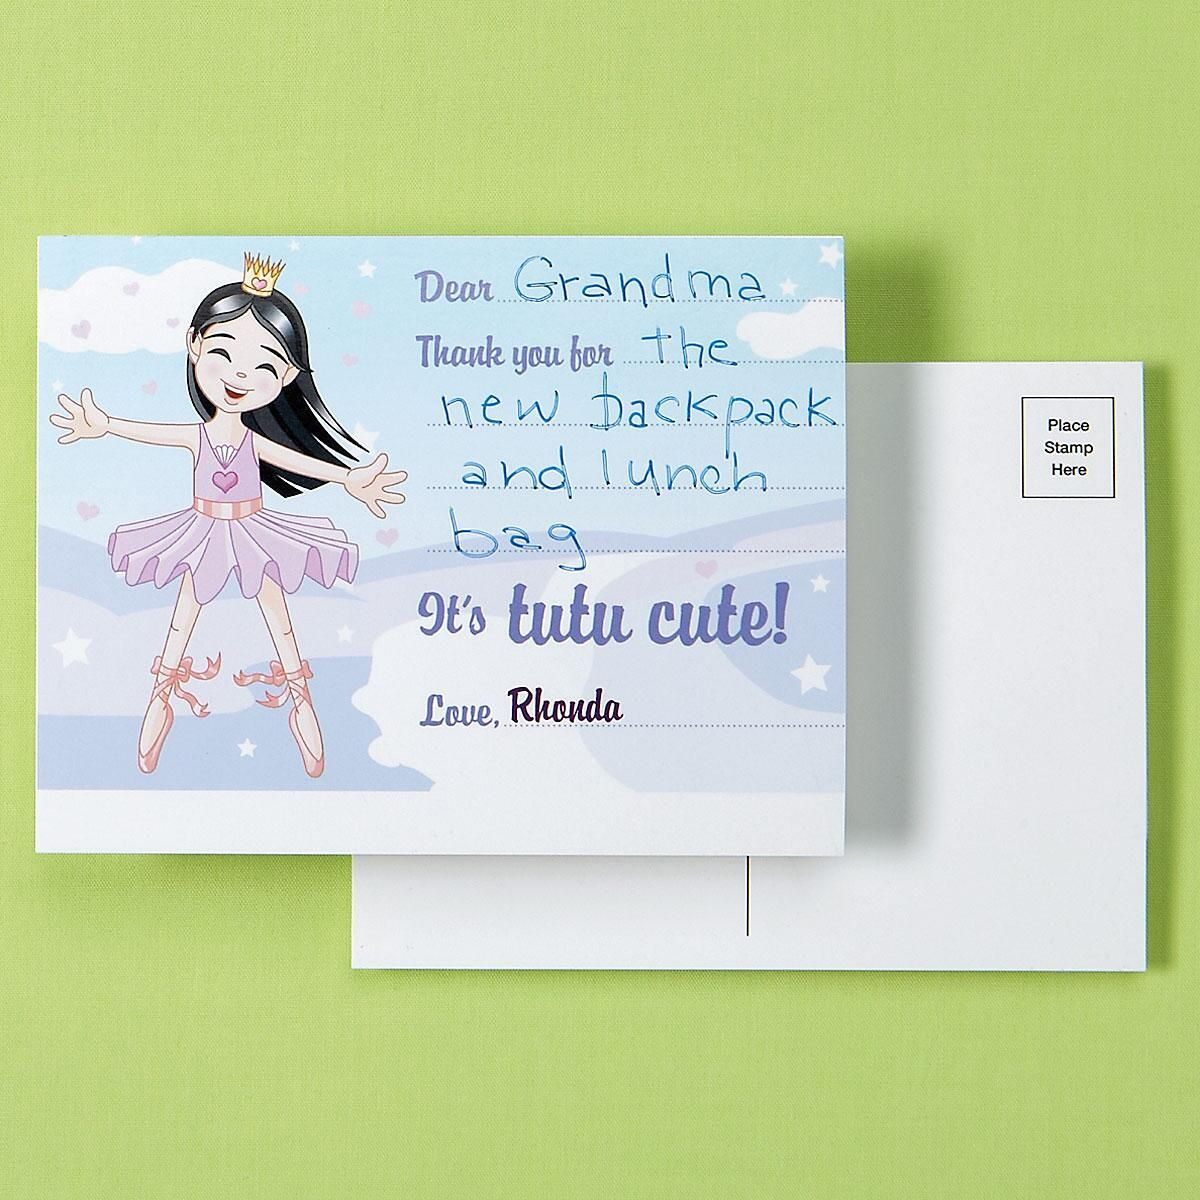 Pretentious Kids Ballerina Personalized Thank You Postcards Kids Ballerina Personalized Thank You Postcards Current Catalog Thank You Postcards Thank You Postcards From Teacher cards Thank You Postcards